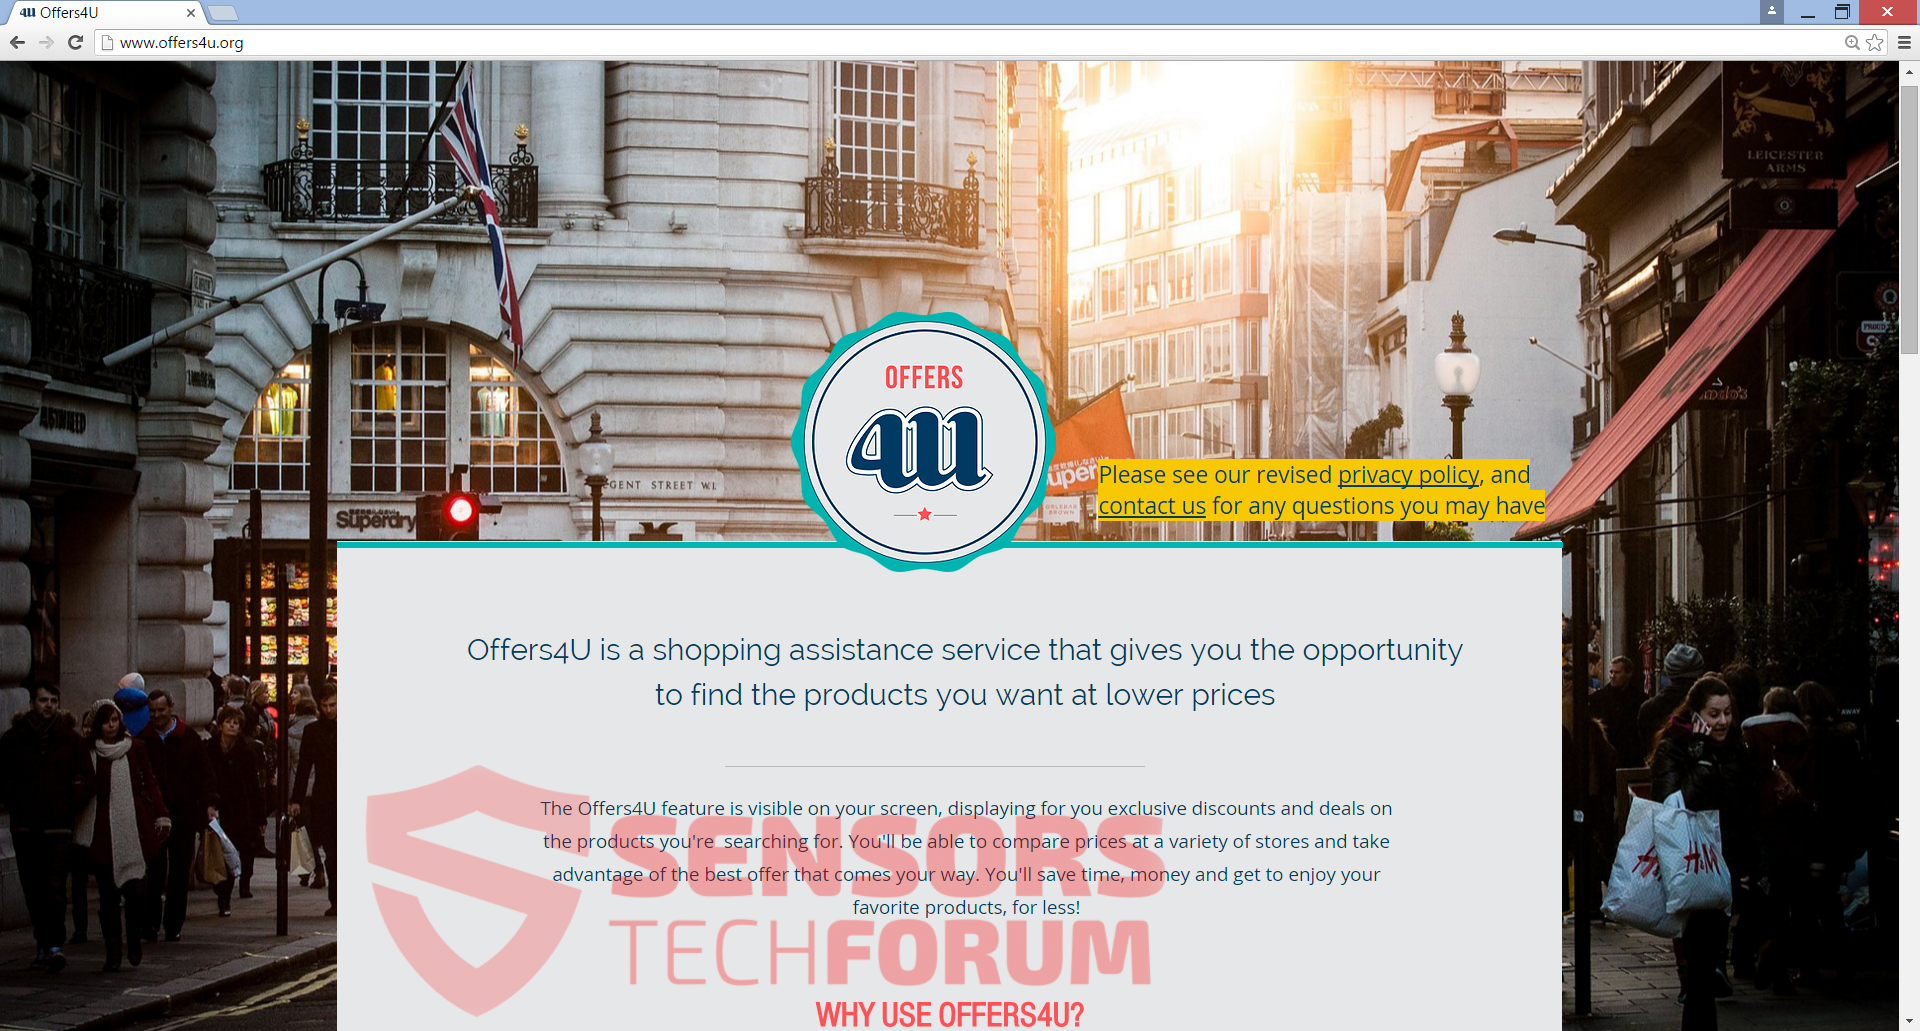 SensorsTechForum-offers4u-offers4u-officielle-site-hoved-side